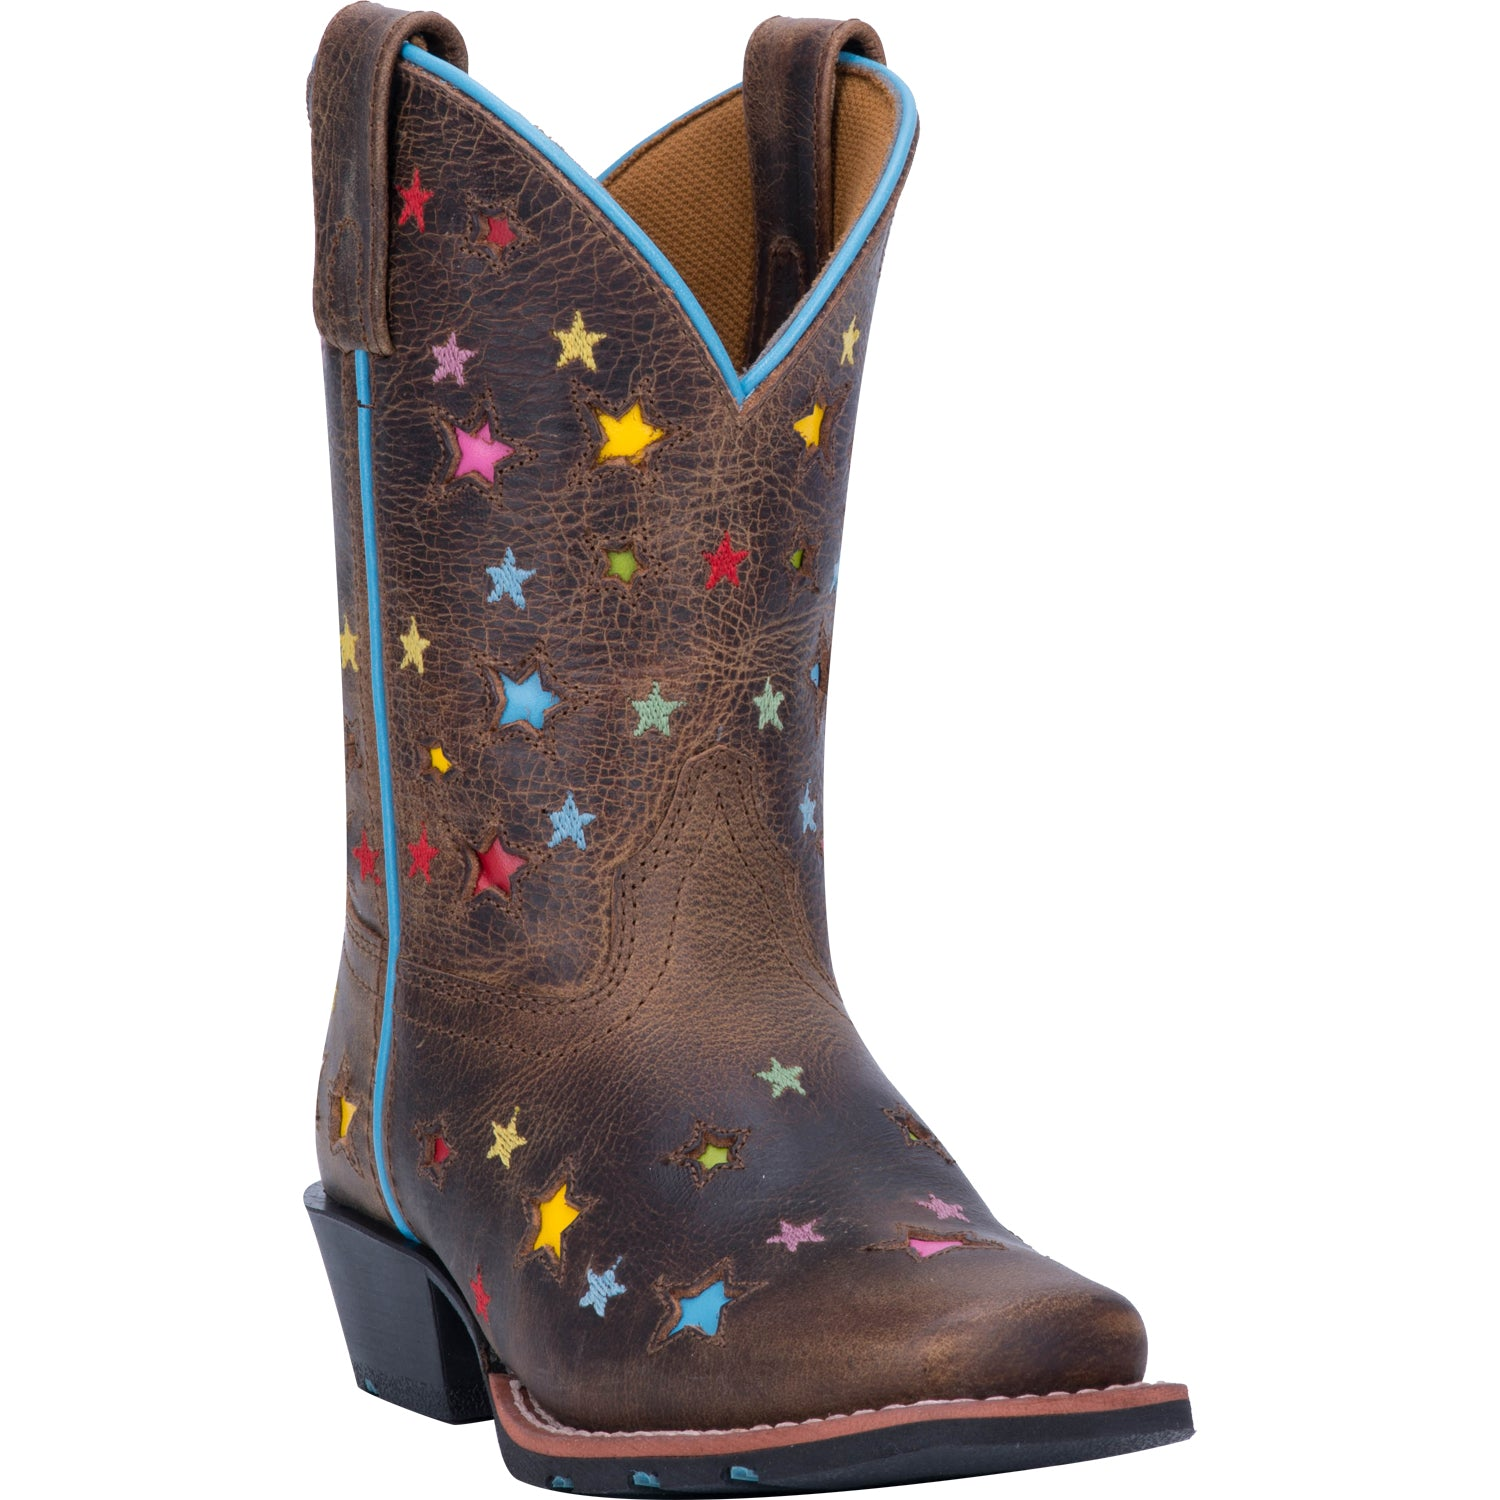 STARLETT LEATHER YOUTH BOOT